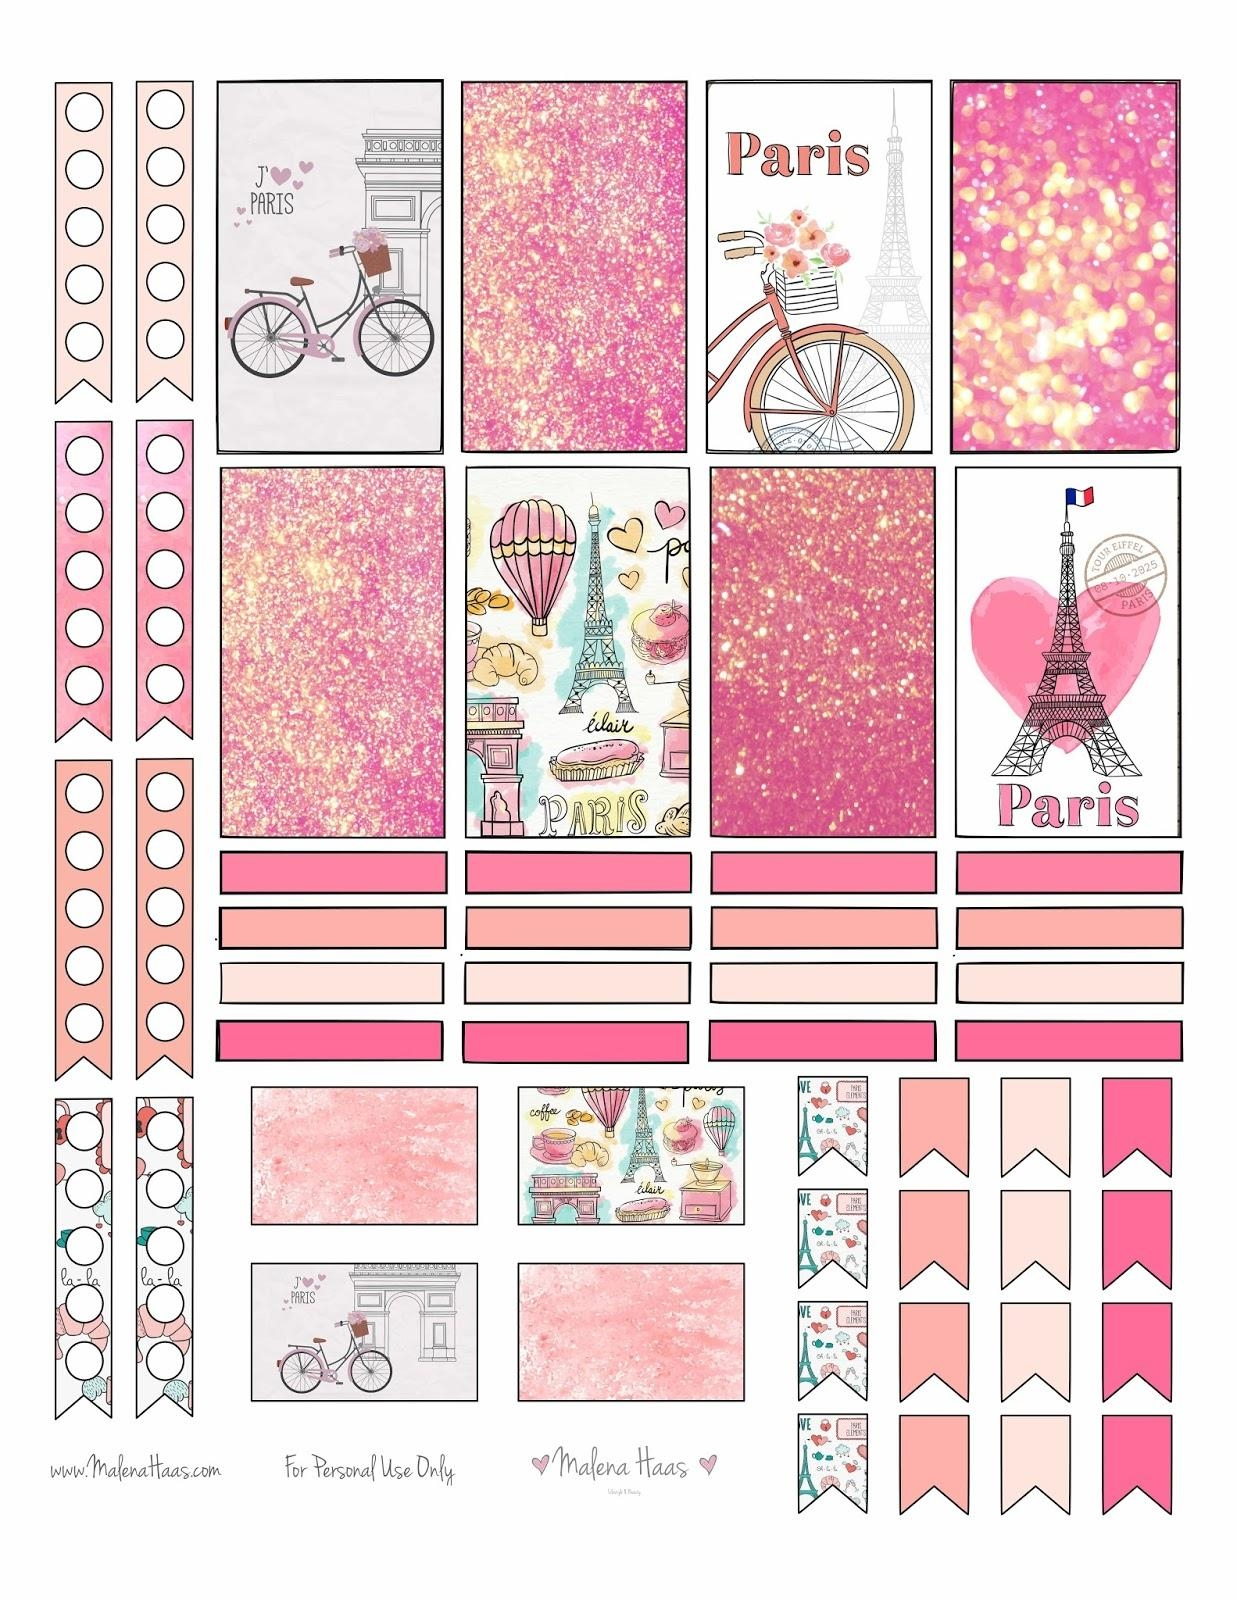 Malena Haas: ❤Freebie Friday❤ Paris Themed Planner Stickers Pertaining To Paris Themed Stickers (View 7 of 20)